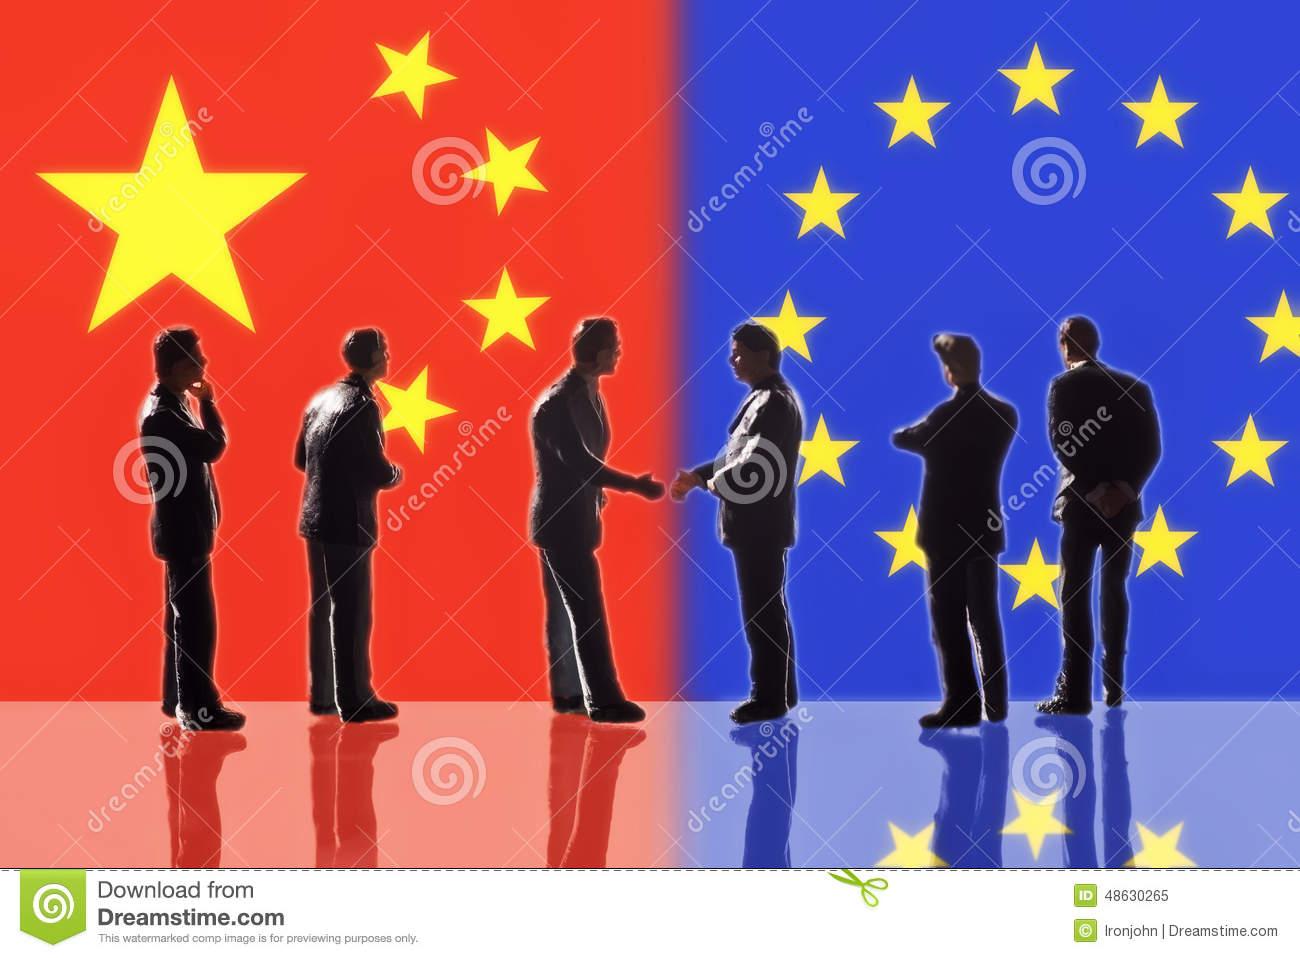 Las relaciones UE-China post pandemia